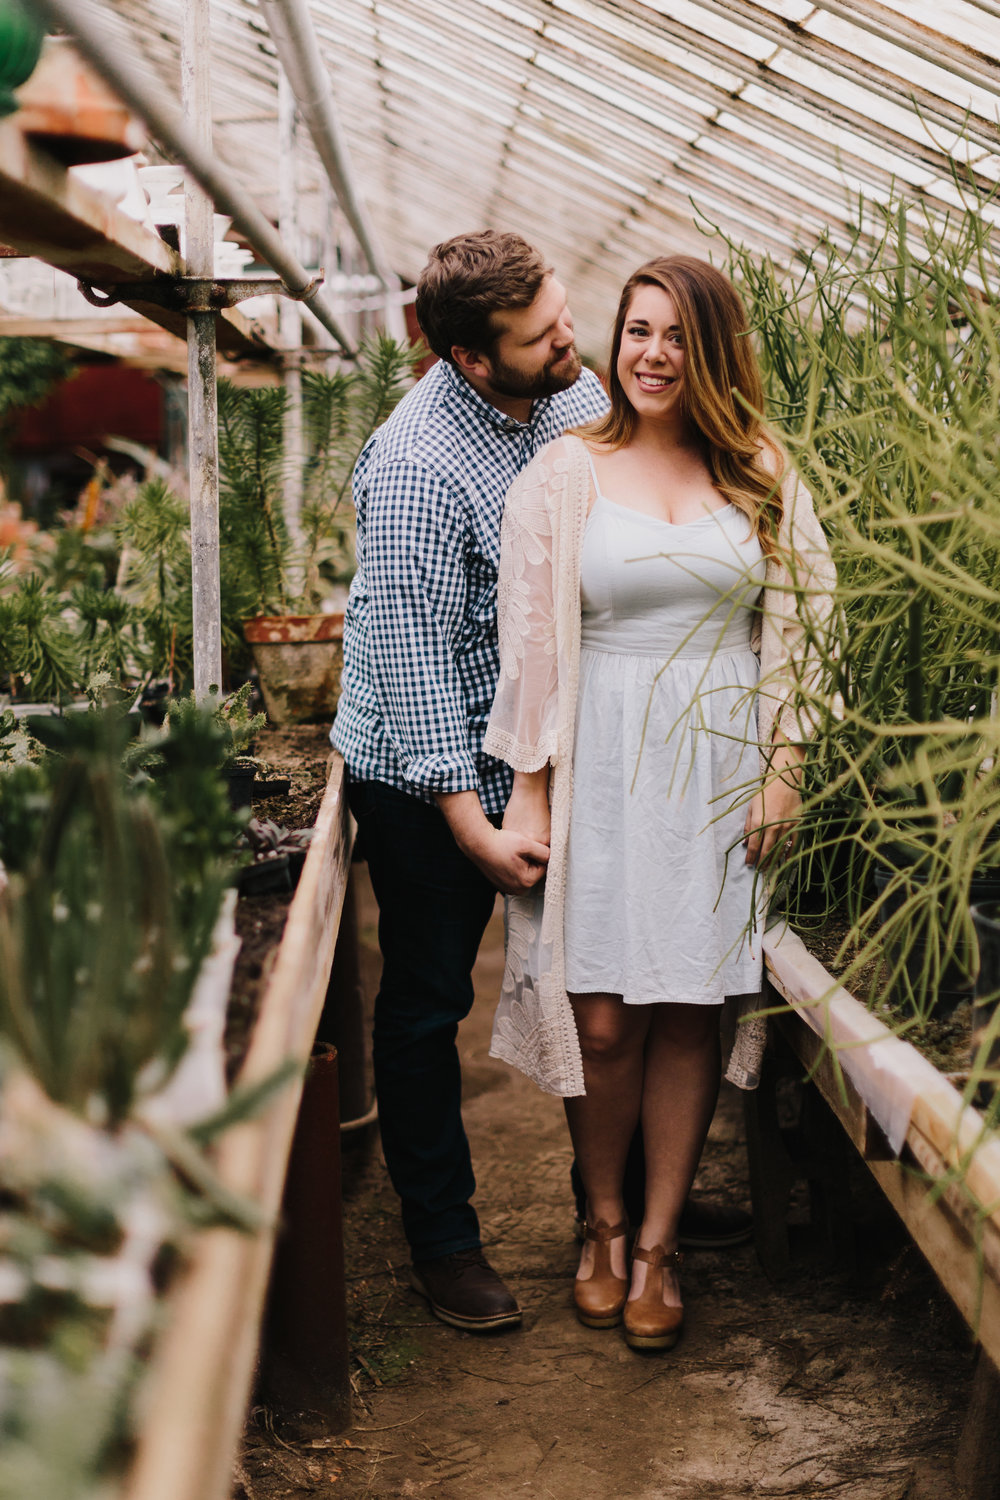 alyssa barletter photography greenhouse engagement photographer kansas city spring wedding-9.jpg